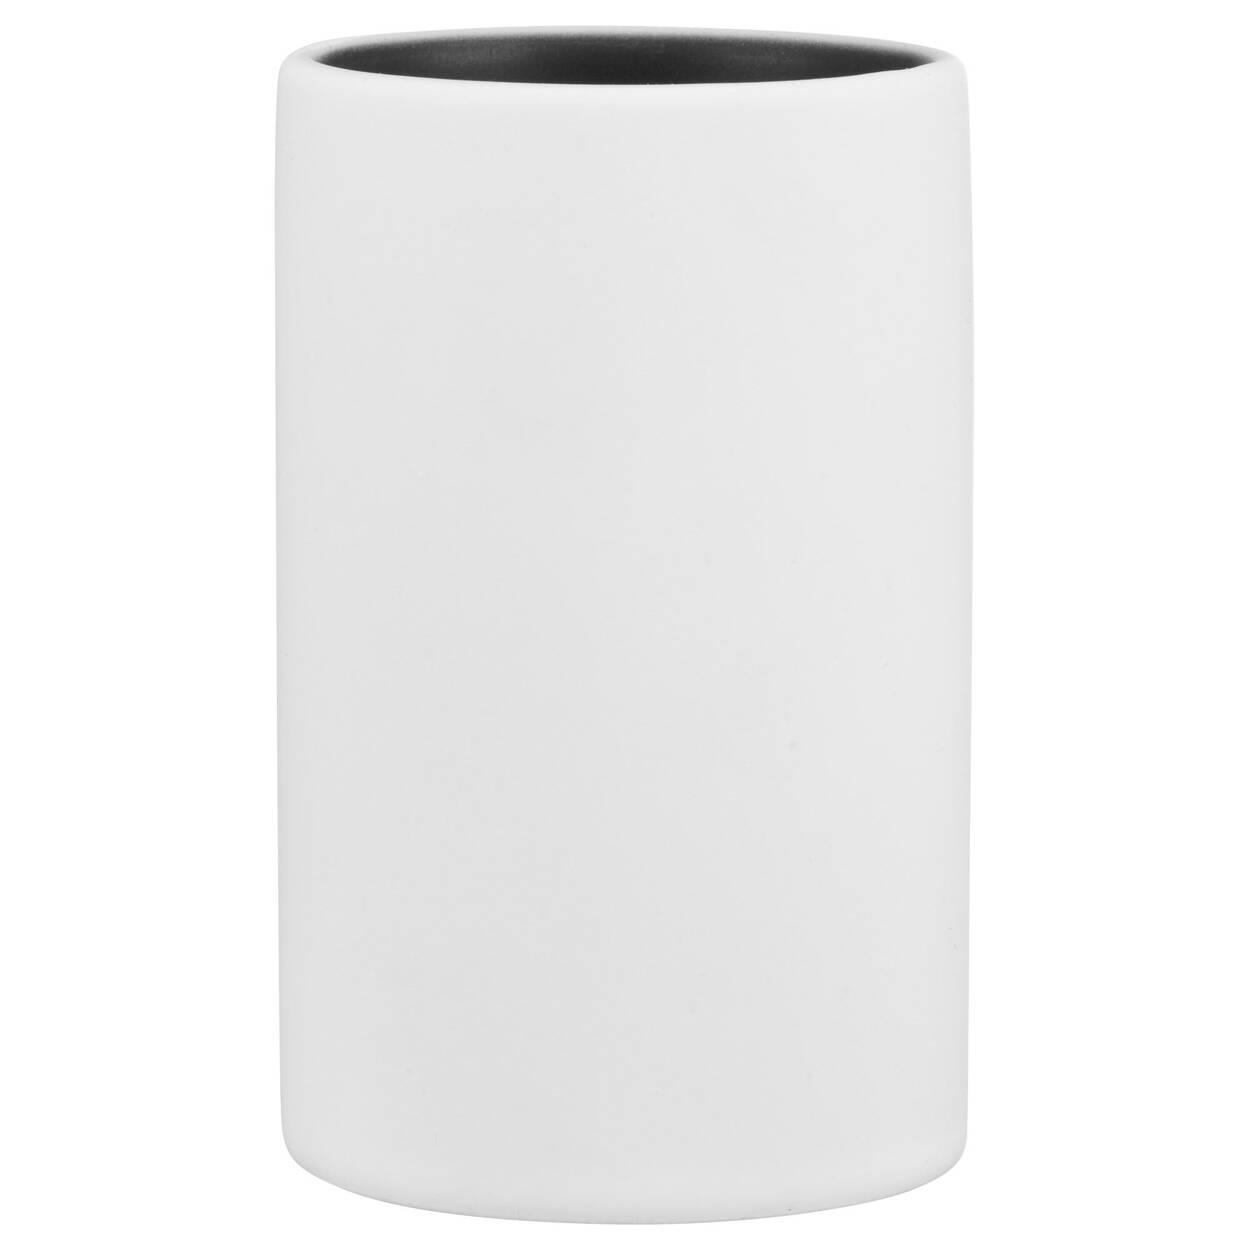 Rubber Coated Black and White Tumbler